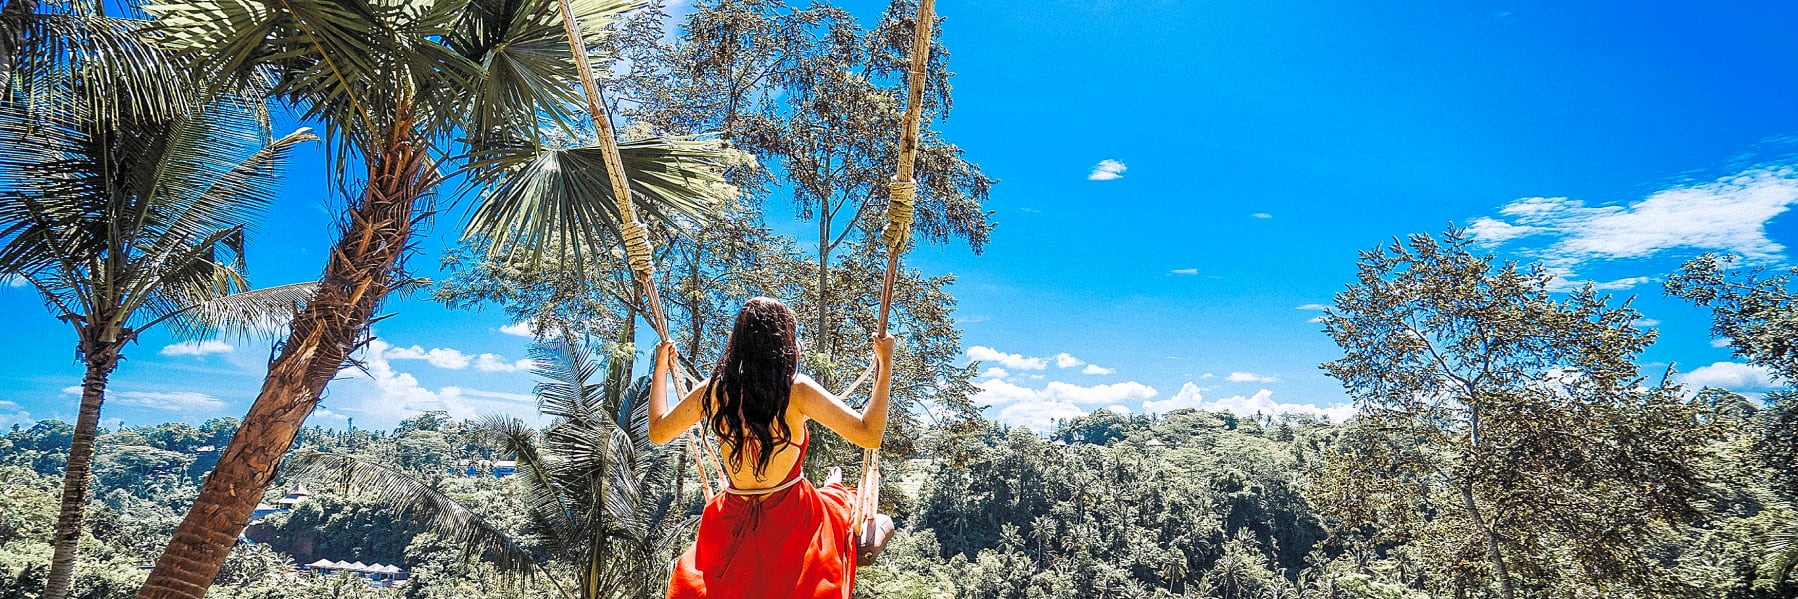 Real Bali Swing & Ubud Small Group Tour – Full Day gallery